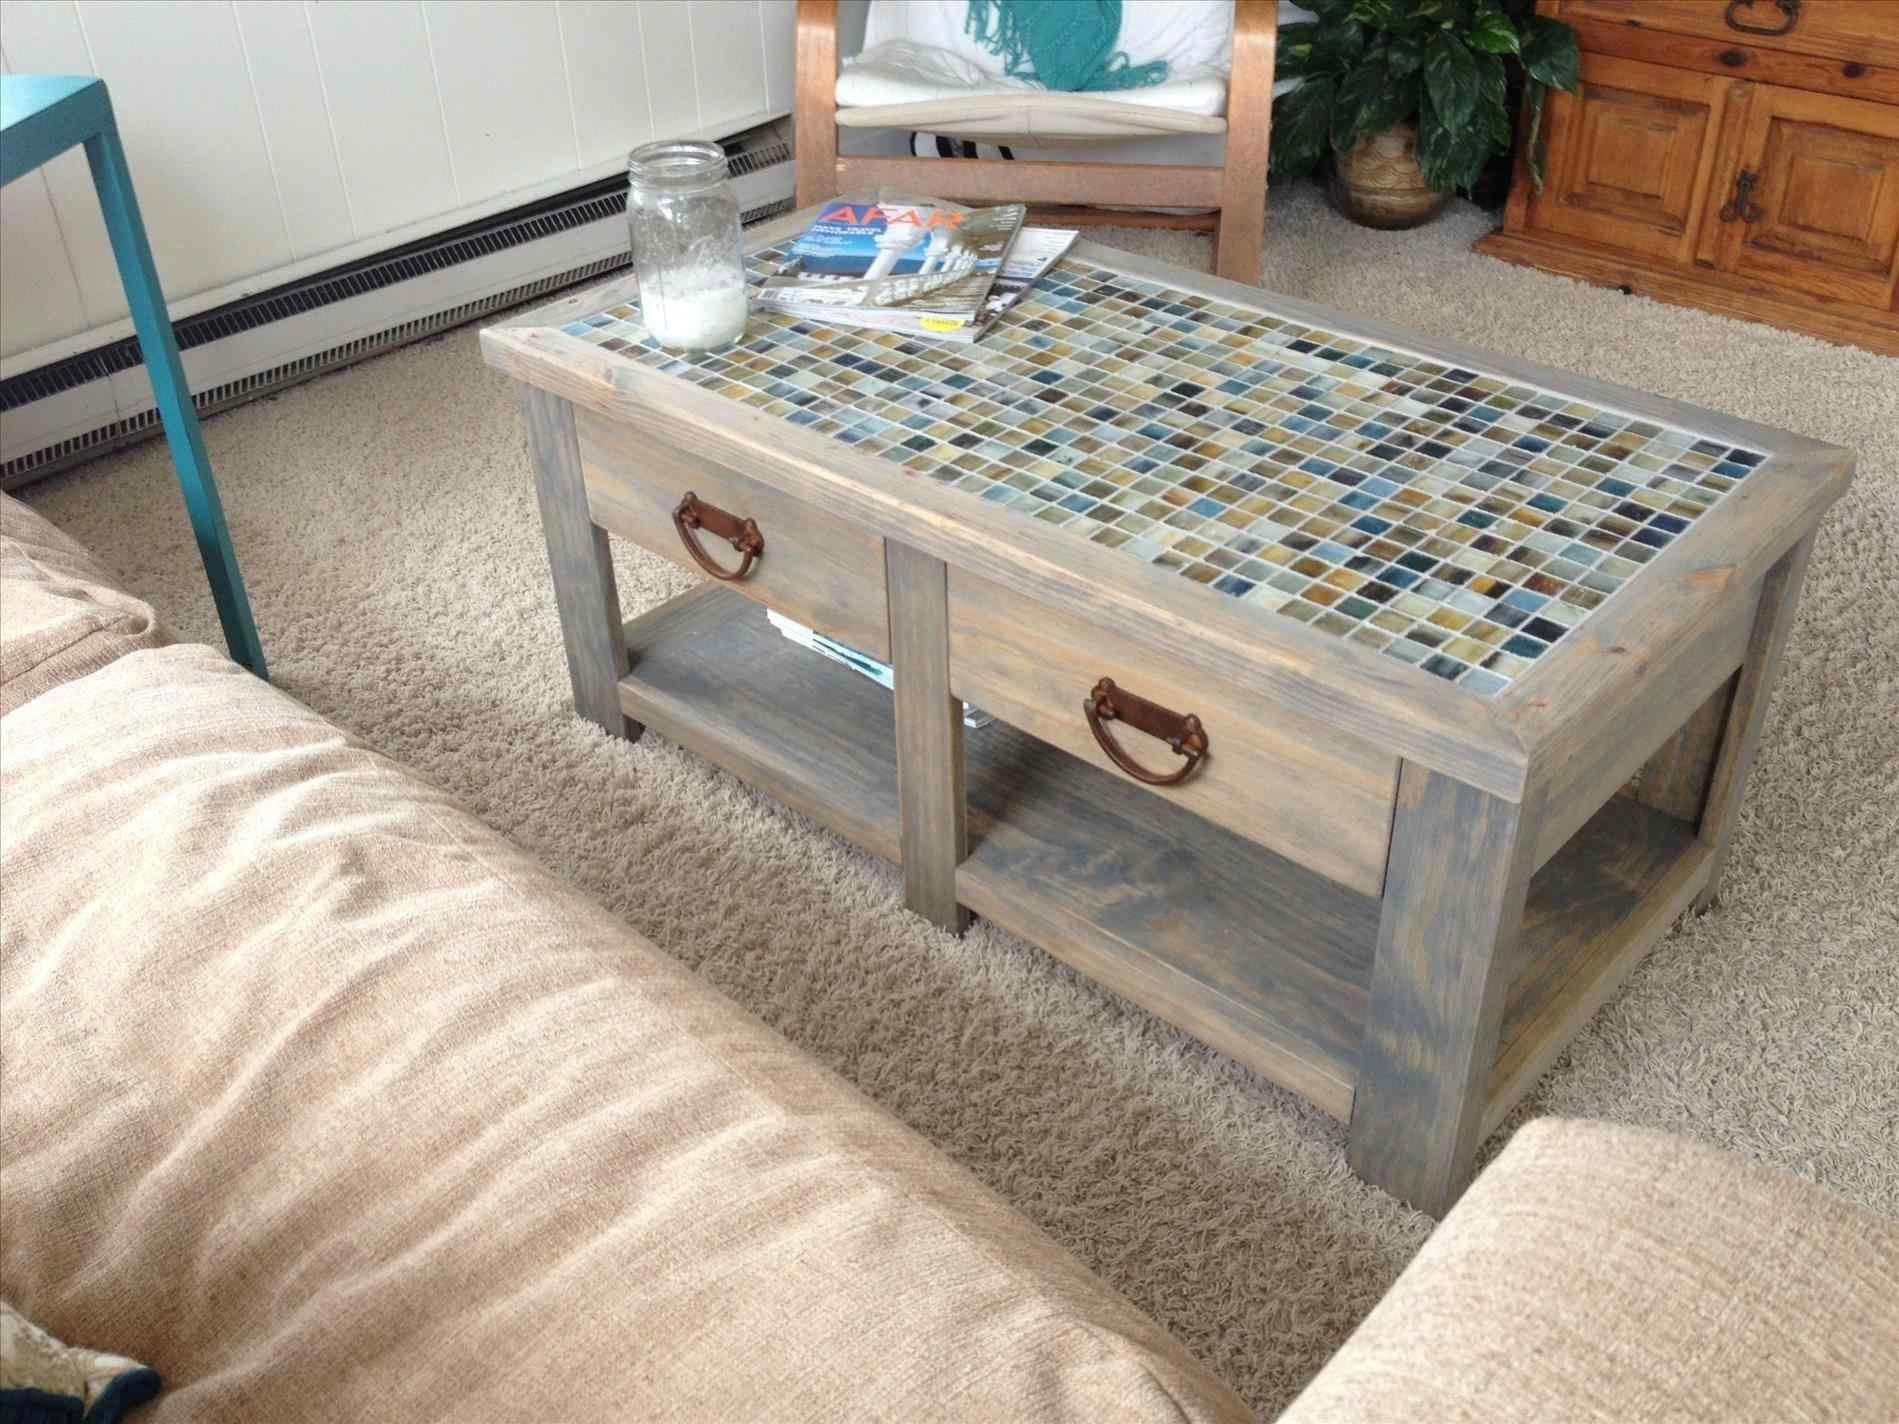 Gorgeous Diy Tile Coffee Table Design For Easy Build Breakpr Tiled Coffee Table Diy Coffee Table Coffee Table Makeover [ 1424 x 1899 Pixel ]